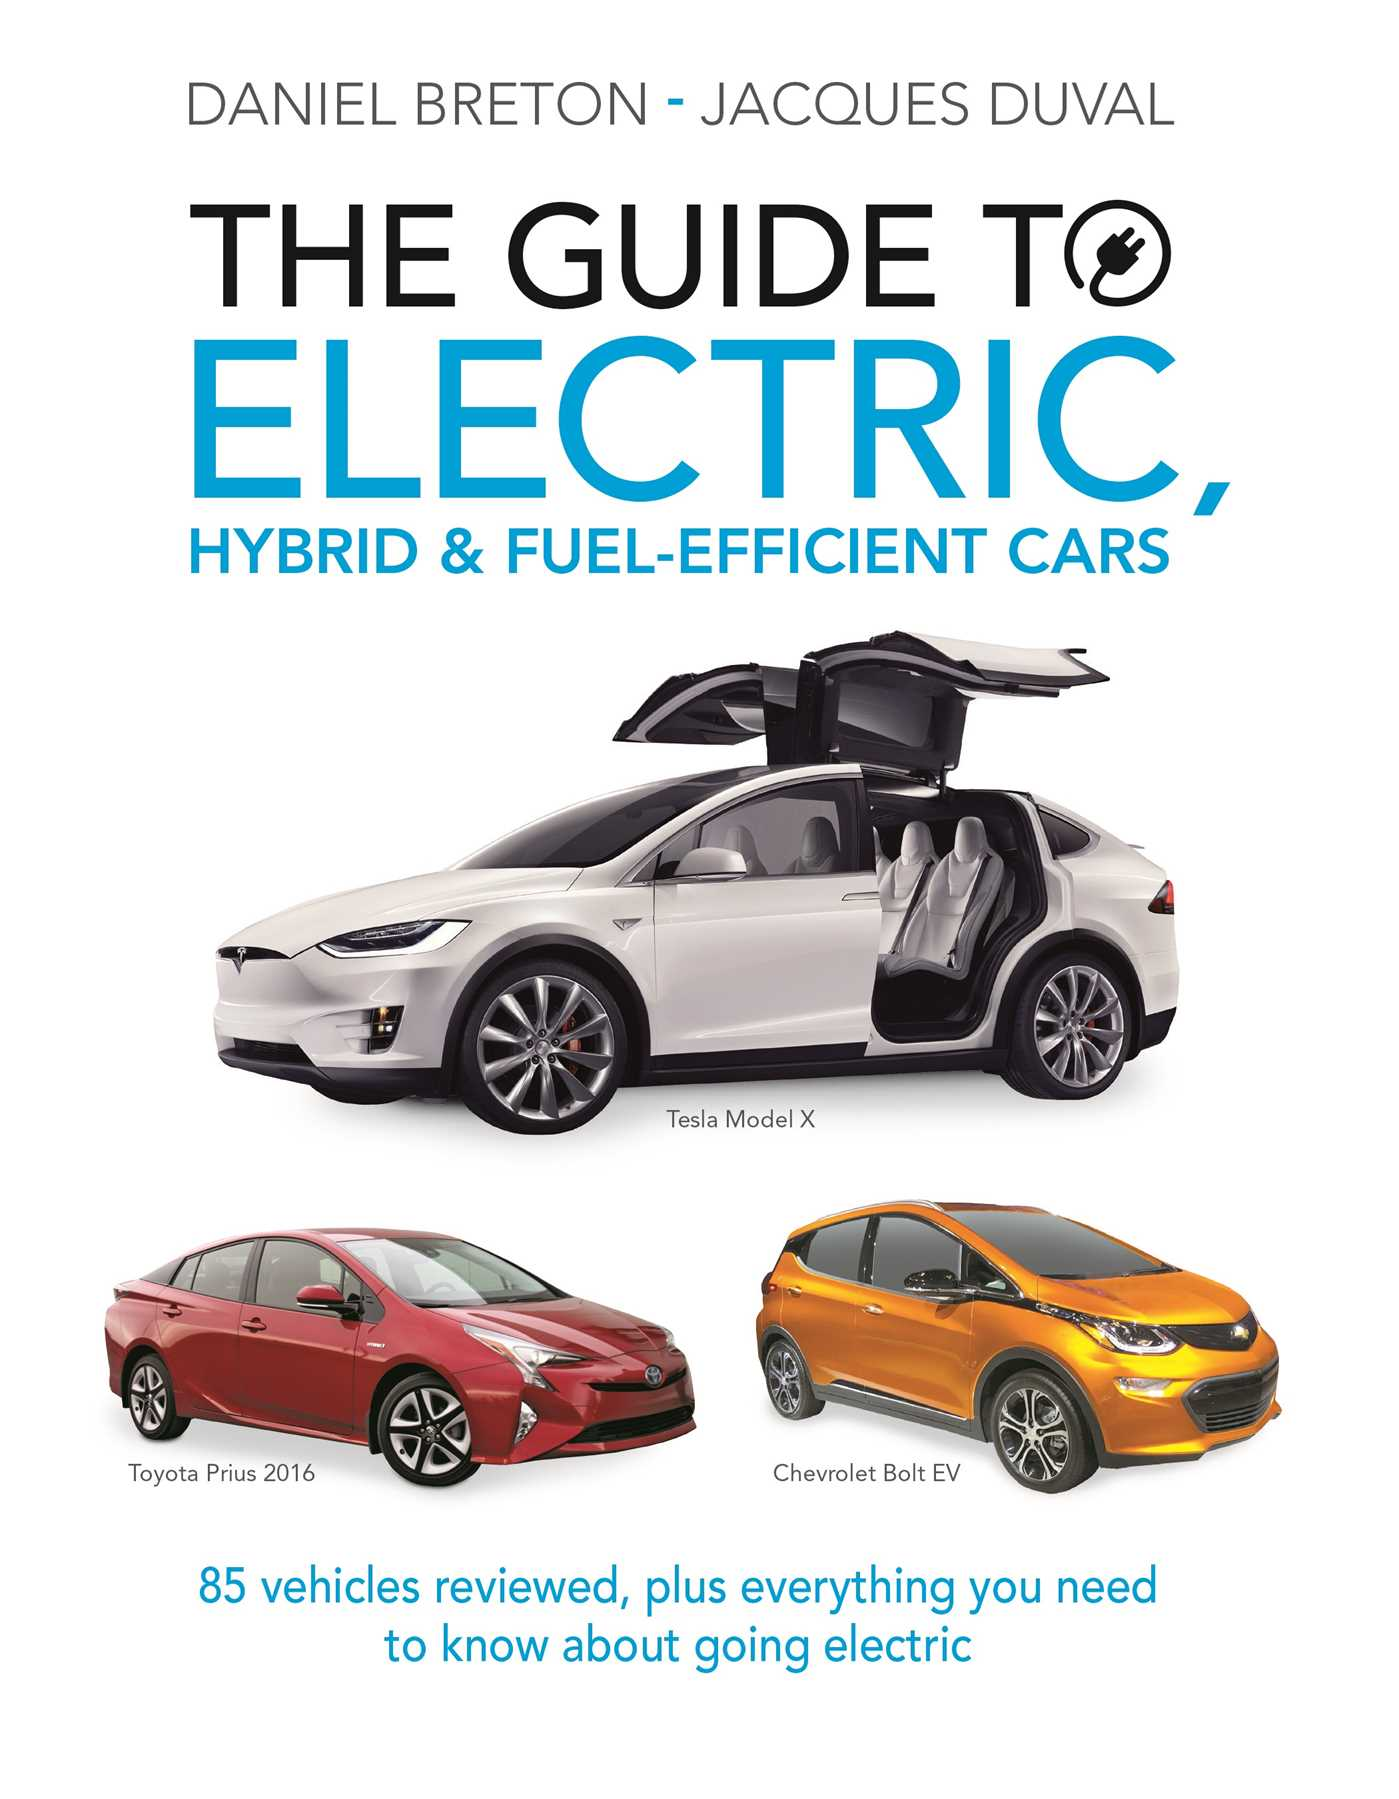 Book Cover Image (jpg): The Guide to Electric, Hybrid & Fuel-Efficient Cars